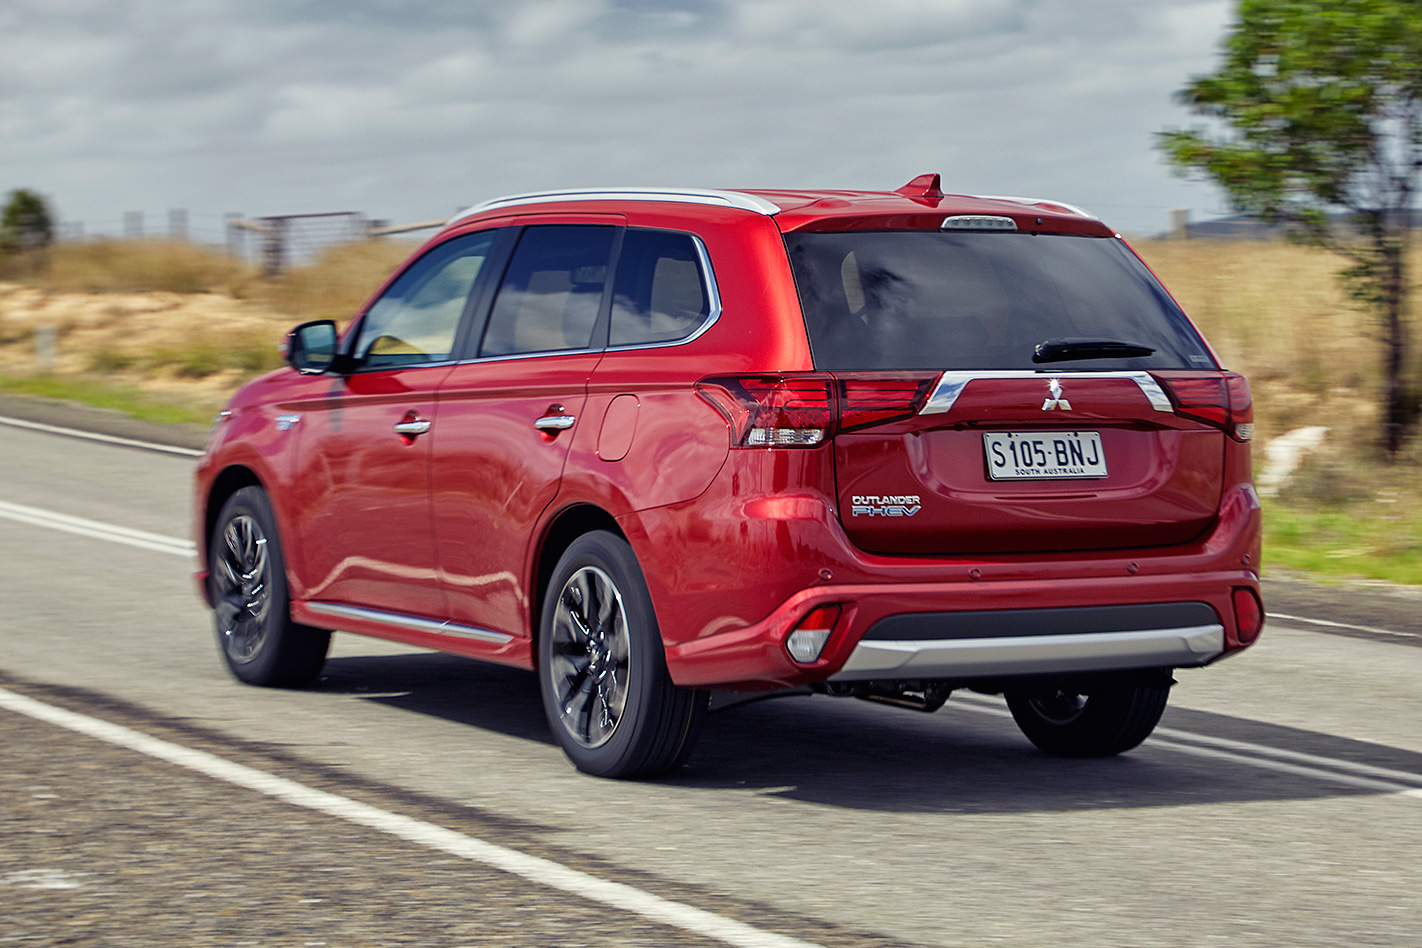 2017 Mitsubishi Outlander Phev 9 Things You Didnt Know Wiring Harness 2006 Endevour Here Are Nine Probably About The